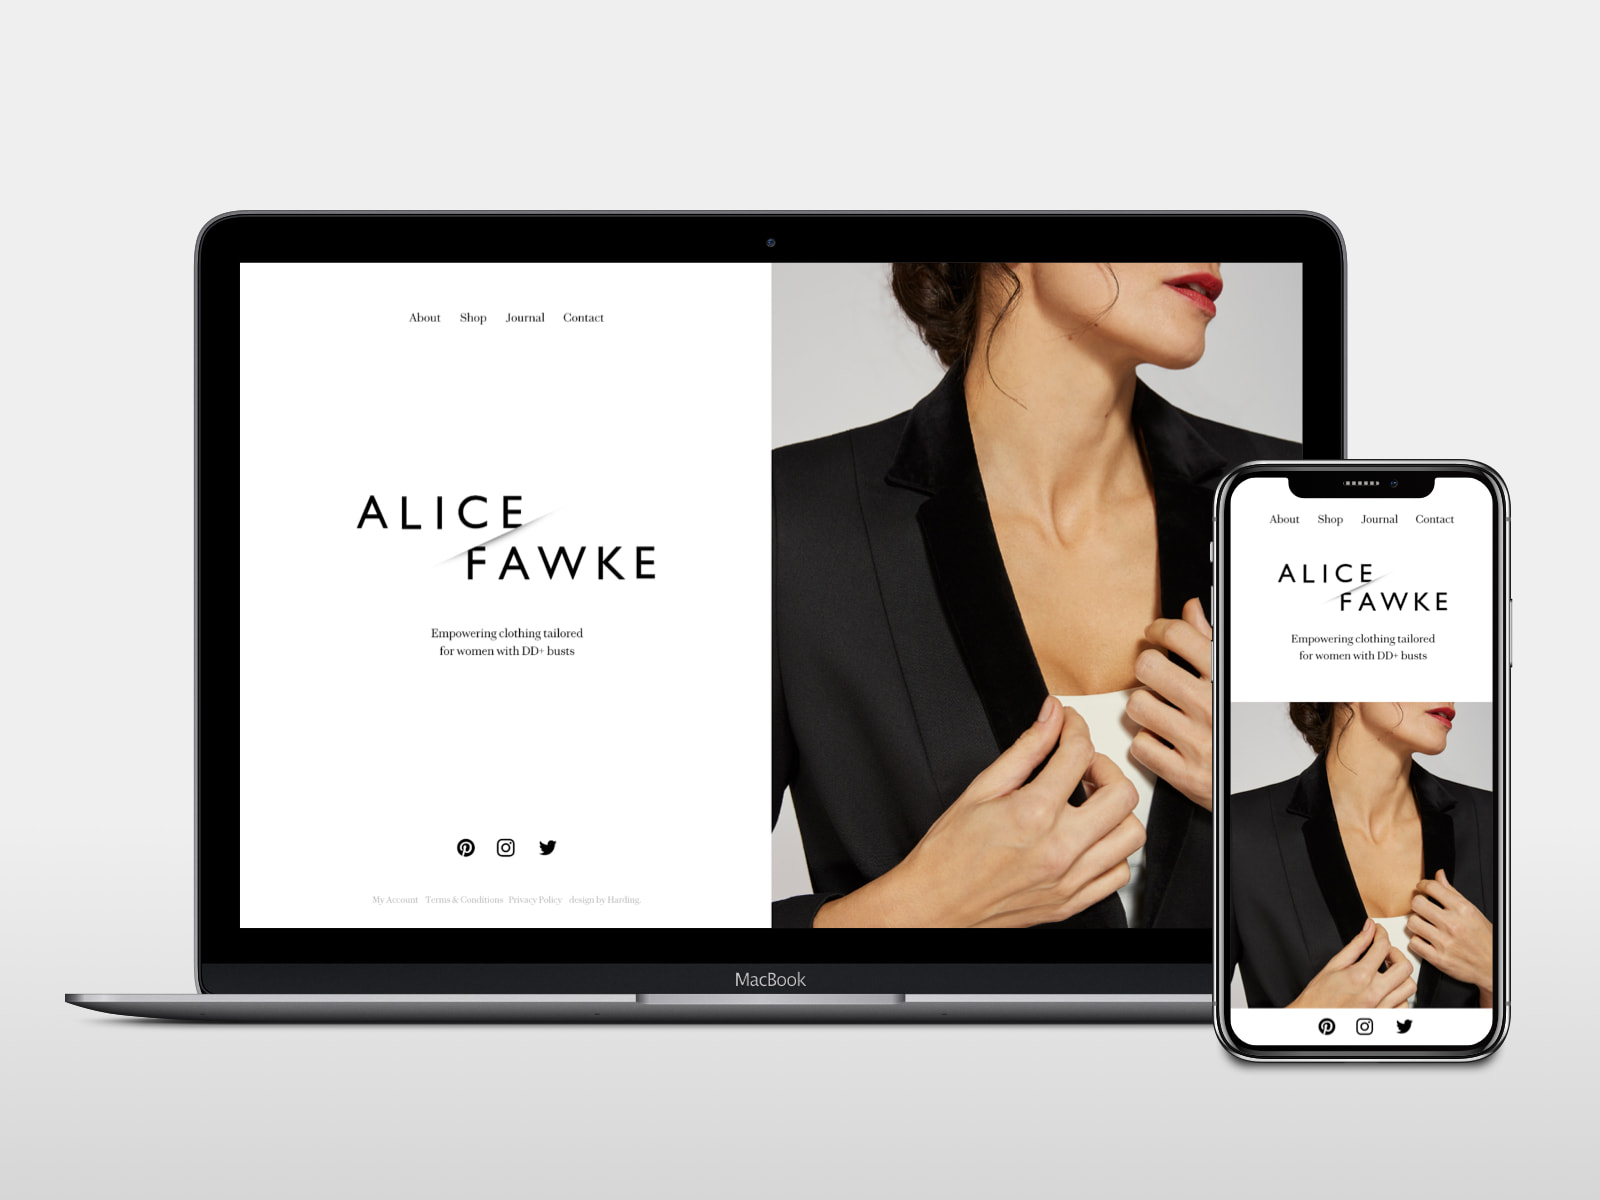 Lee Harding - Alice Fawke website